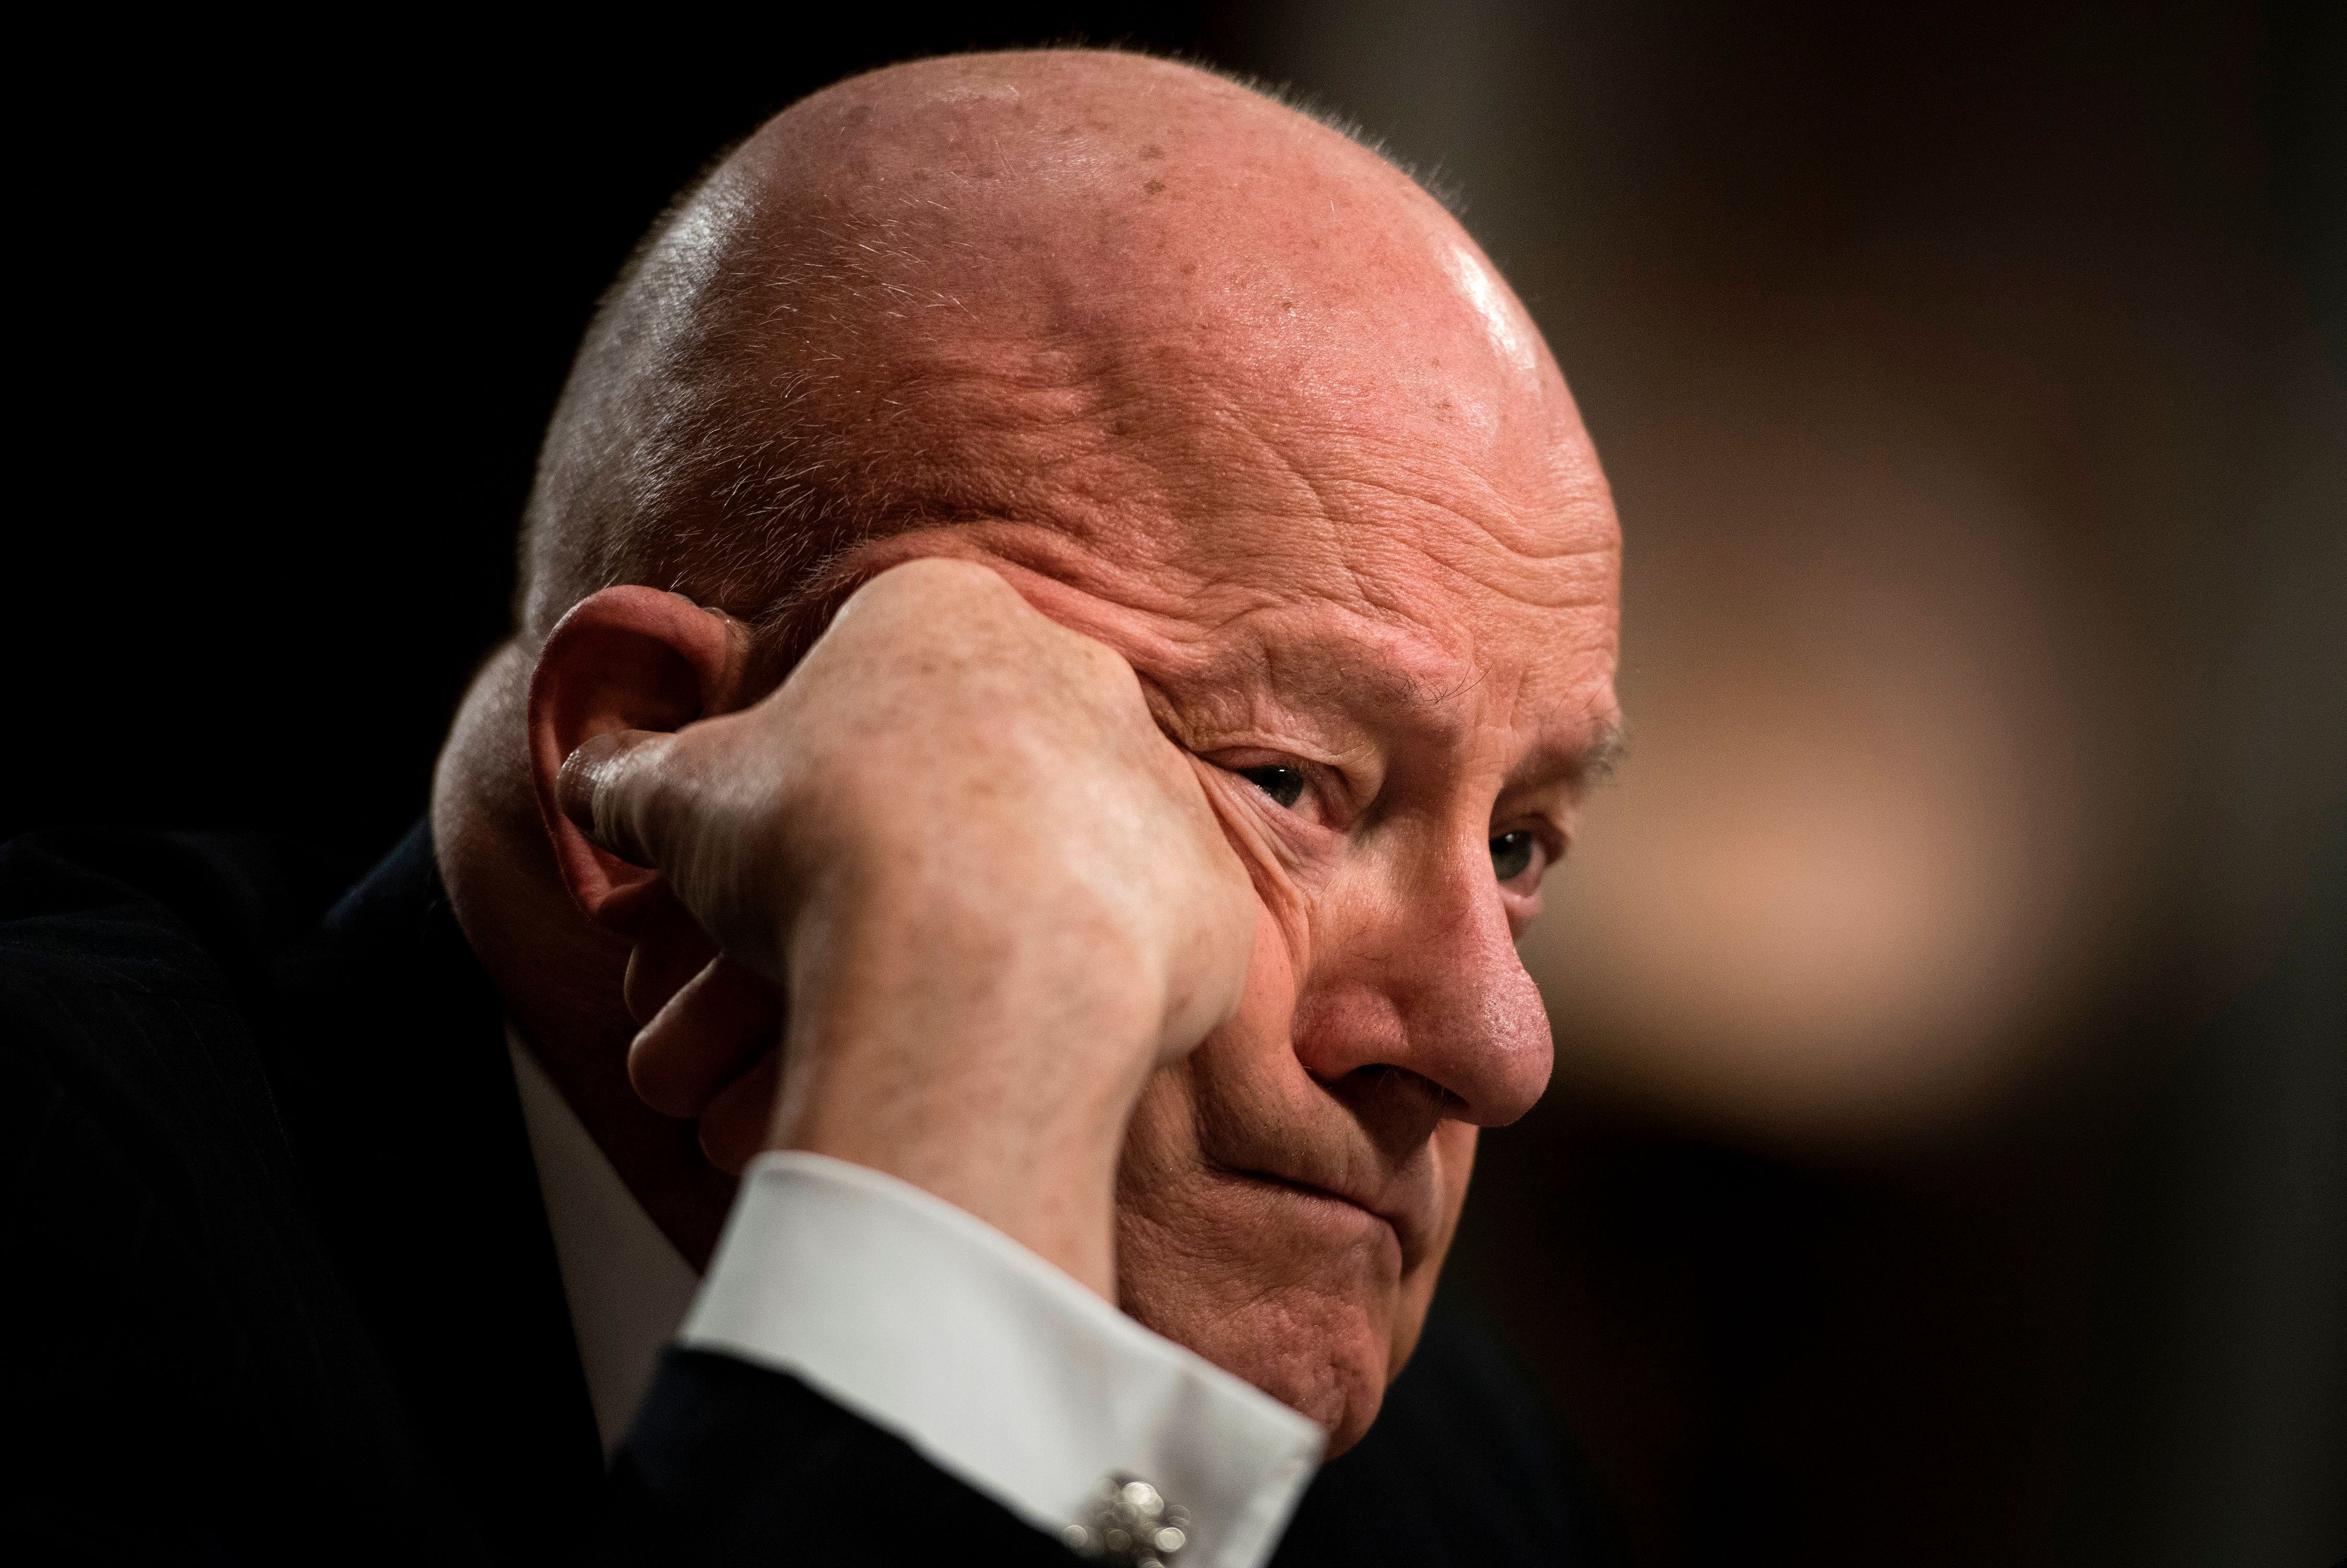 Former Director of National Intelligence James Clapper listens during a hearing of the Senate Armed Services Committee on Capitol Hill May 11, 2017 in Washington, DC. / AFP PHOTO / Brendan Smialowski        (Photo credit should read BRENDAN SMIALOWSKI/AFP/Getty Images)